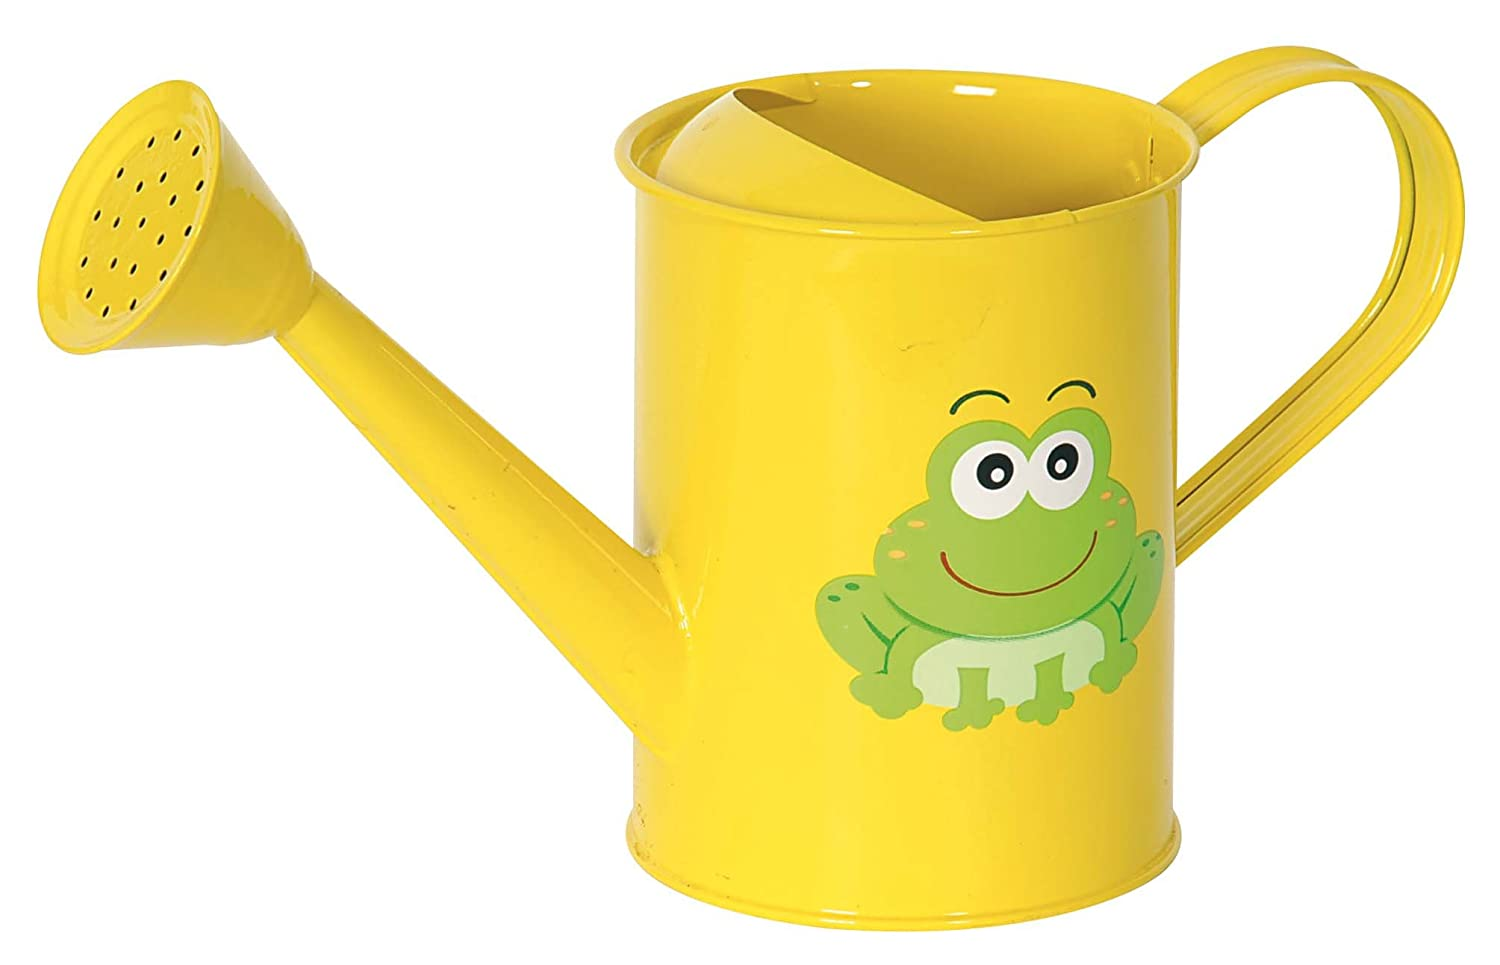 Verdemax 5959 Watering Can for Children